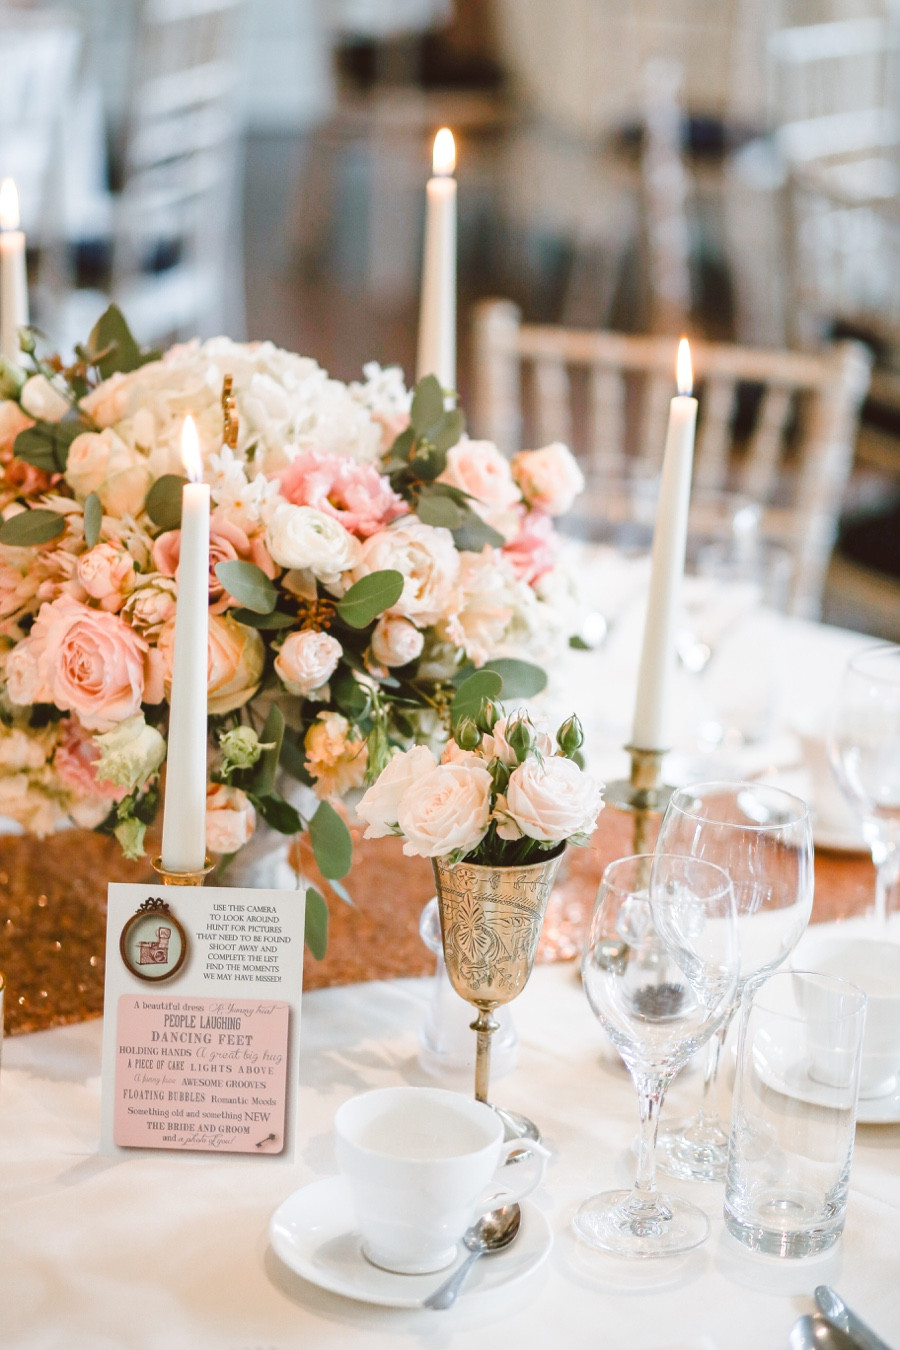 Wedding Table Decorations  How to decorate your wedding tables for under £10